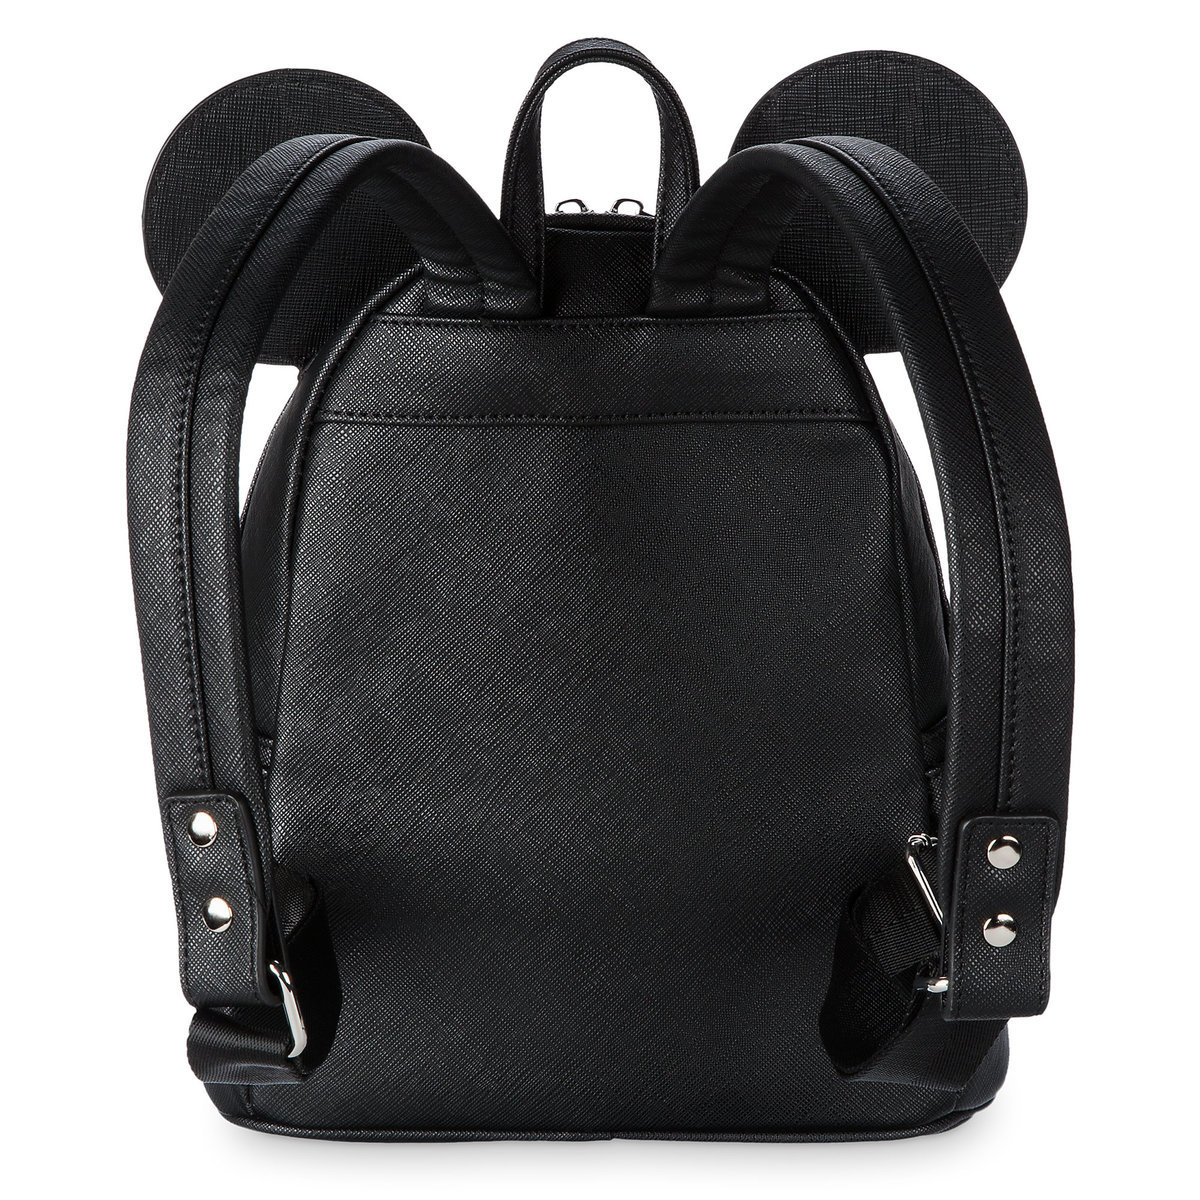 aa9ea33b98 Product Image of Mickey Mouse Mini Backpack by Loungefly   2